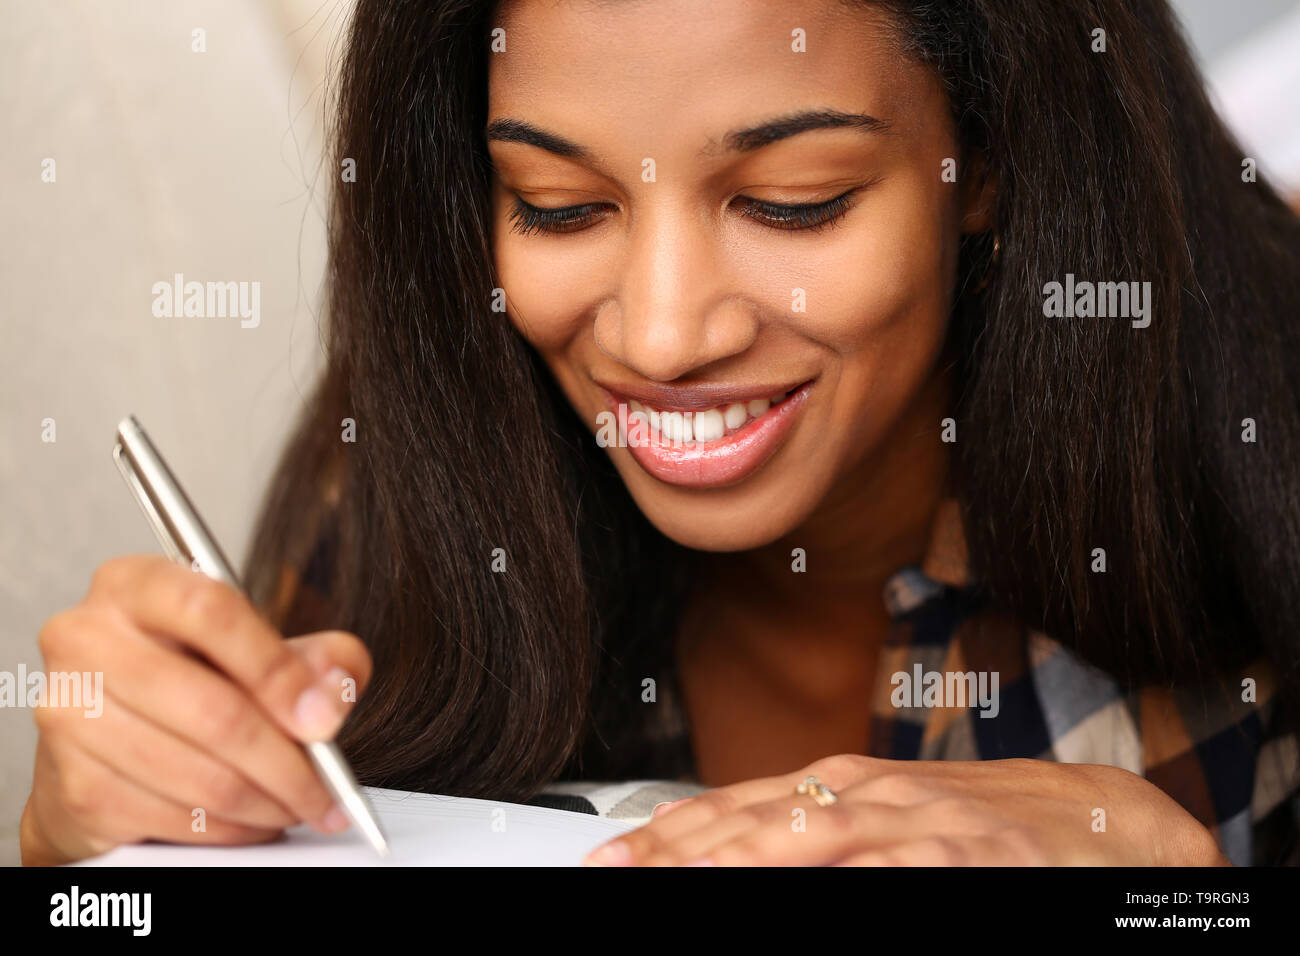 Smiling black woman write story in notebook - Stock Image